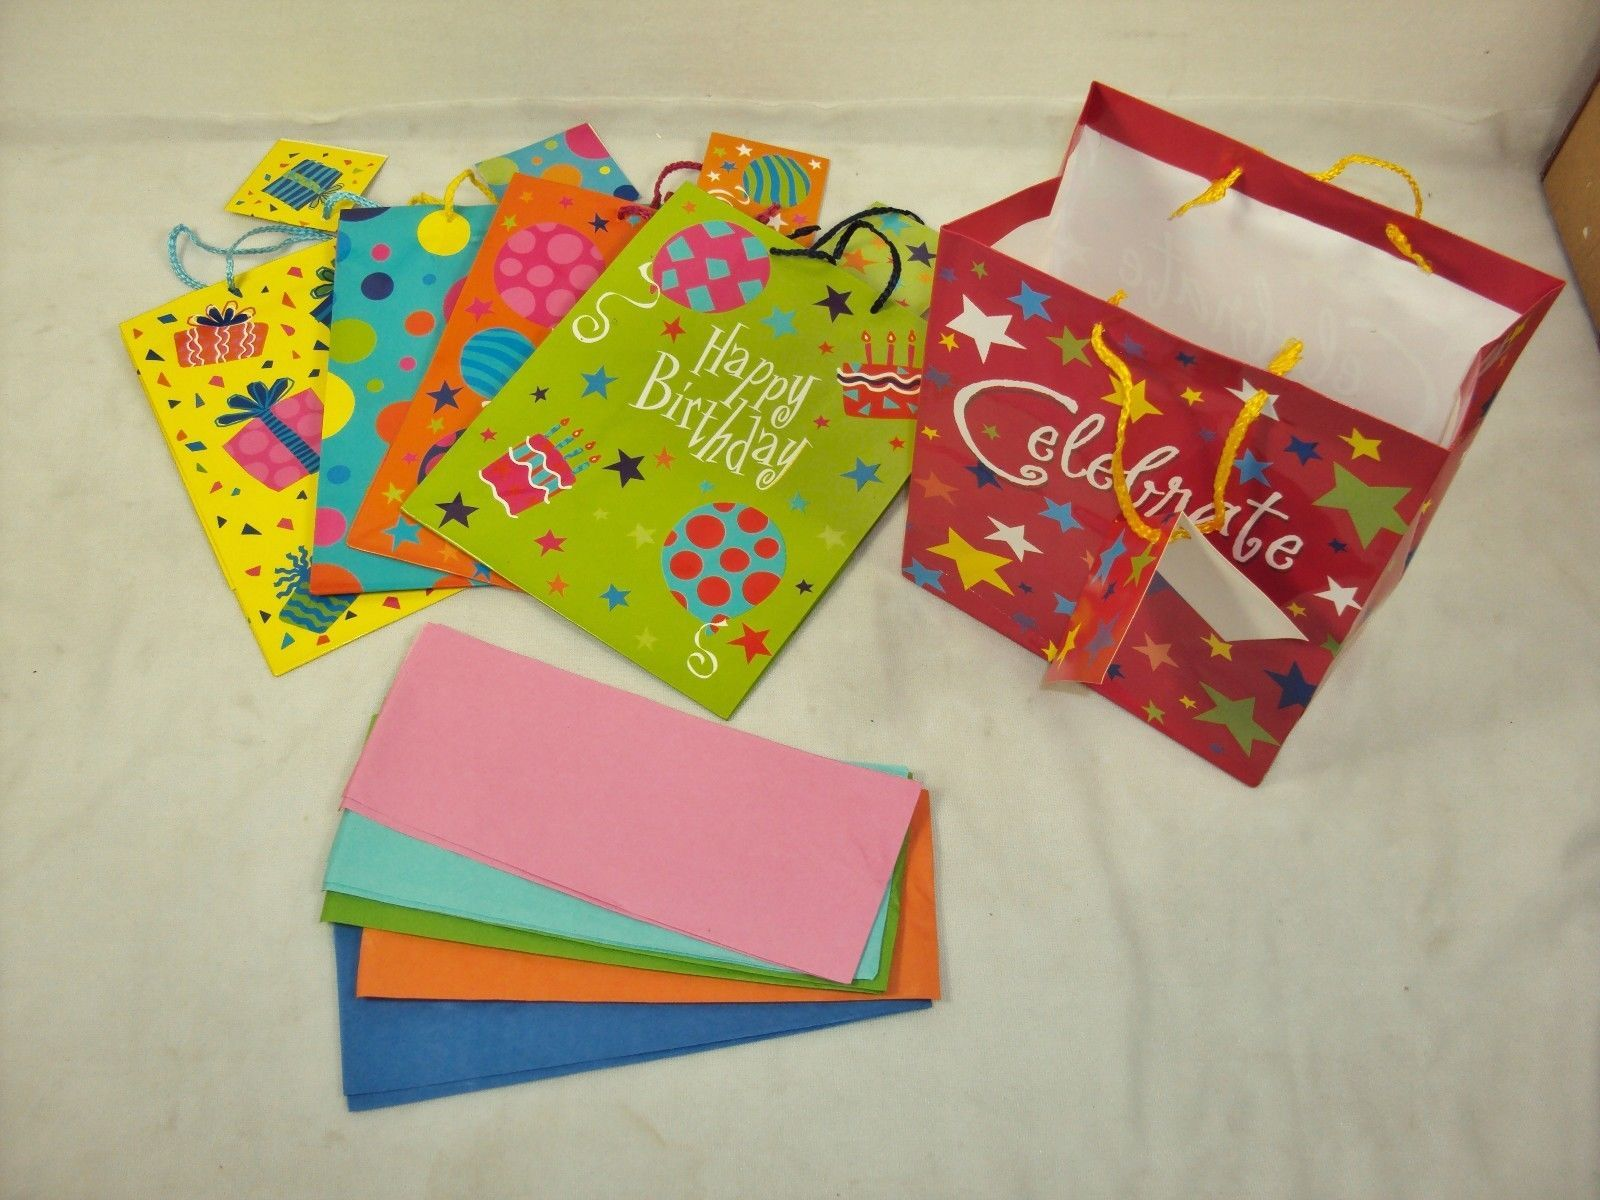 American Greetings Gift Bag 9 Listings